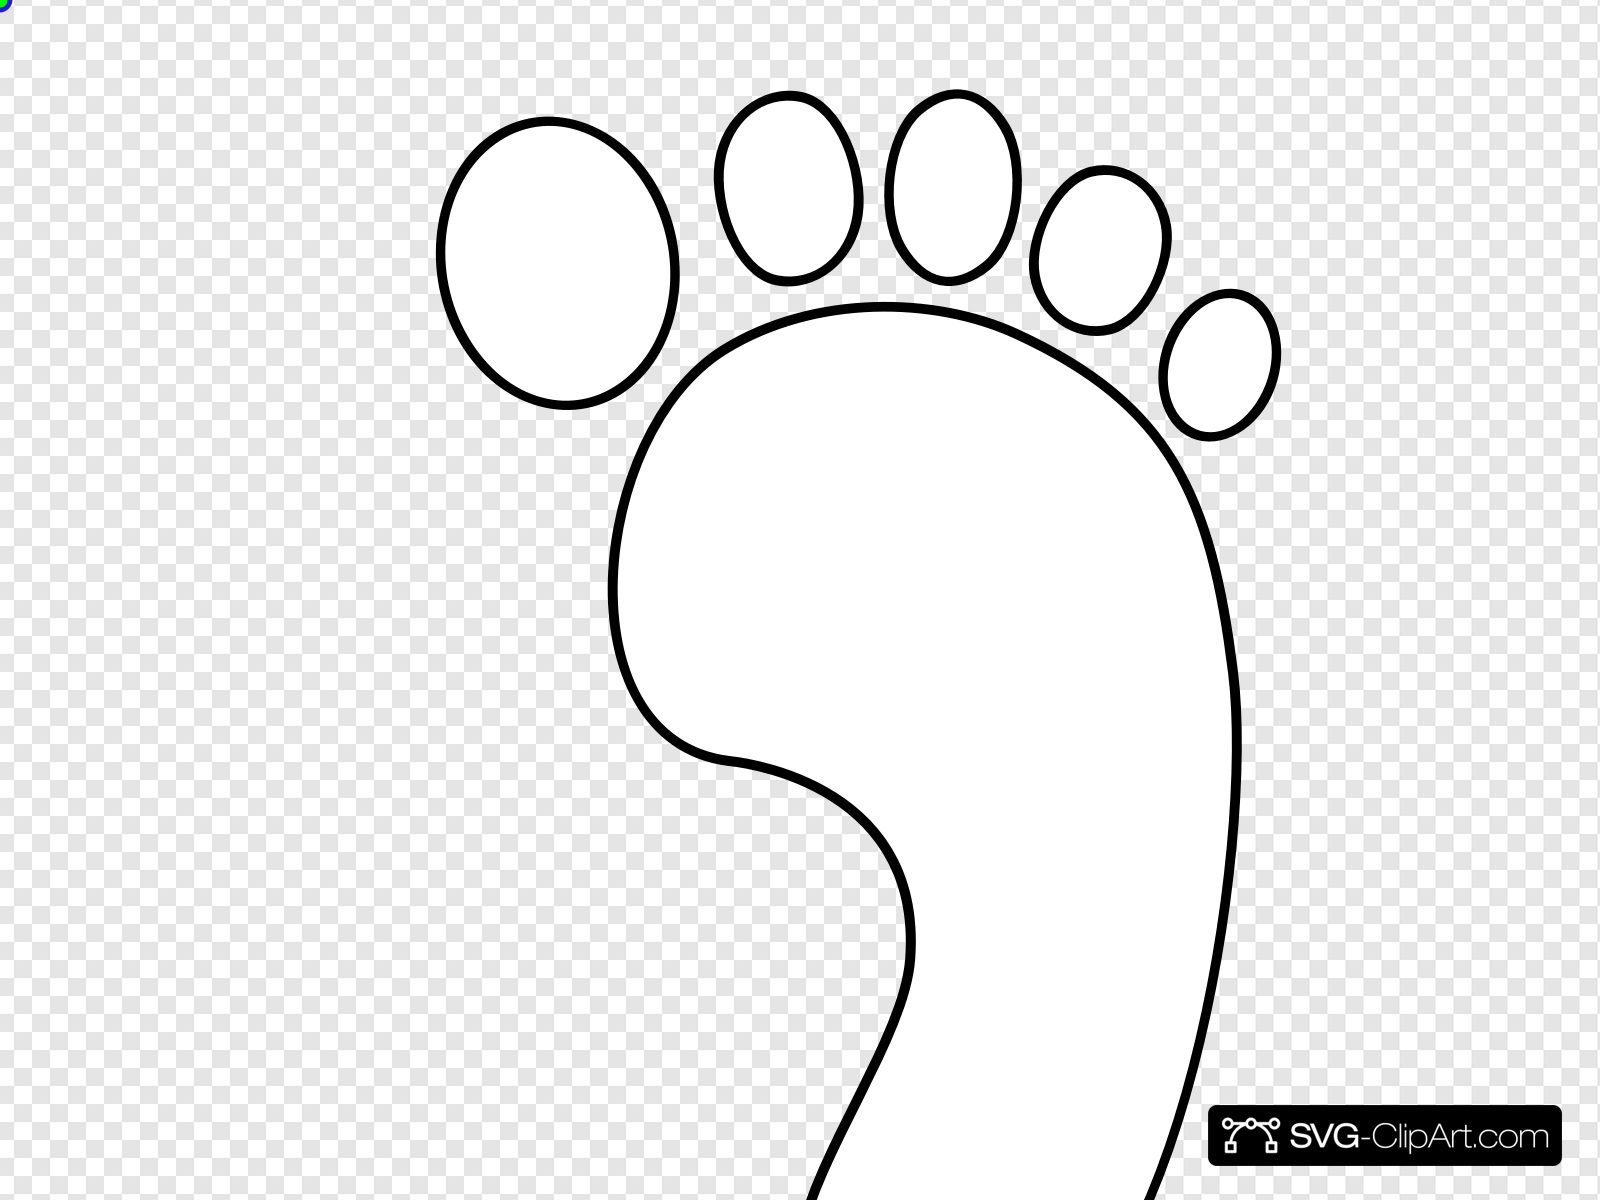 Right Footprint Bw Clip art, Icon and SVG.